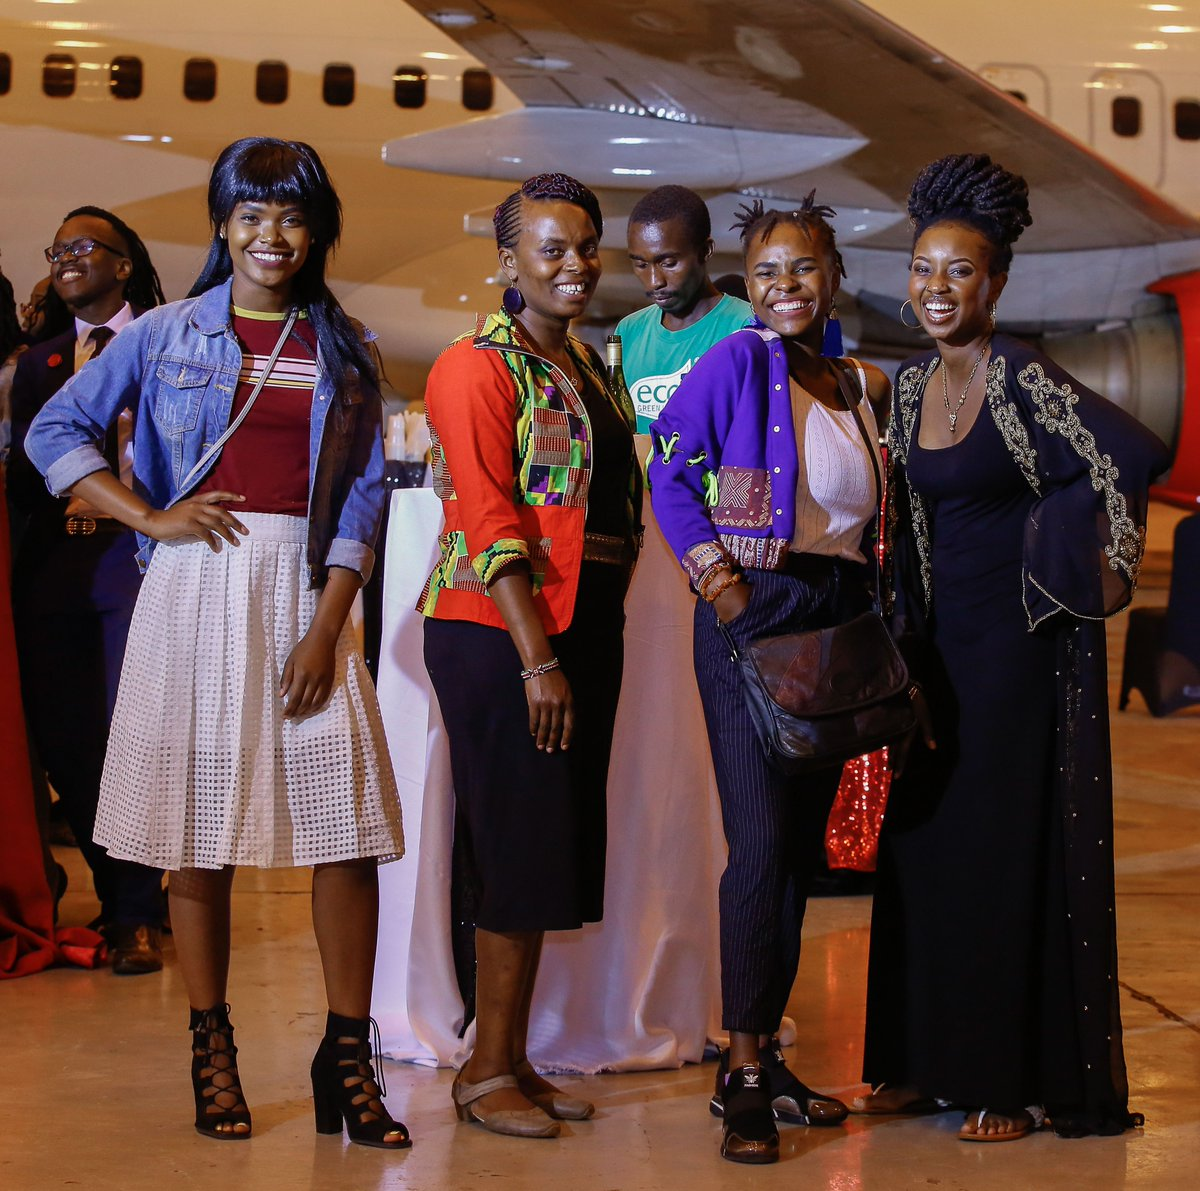 Kenya Airways On Twitter We Engaged Students From 4 Designs Schools In Nairobi Evelyn Mcensal Mefa University Of Nairobi To Develop Innovative Products From Obsolete Materials Showcase Them In A